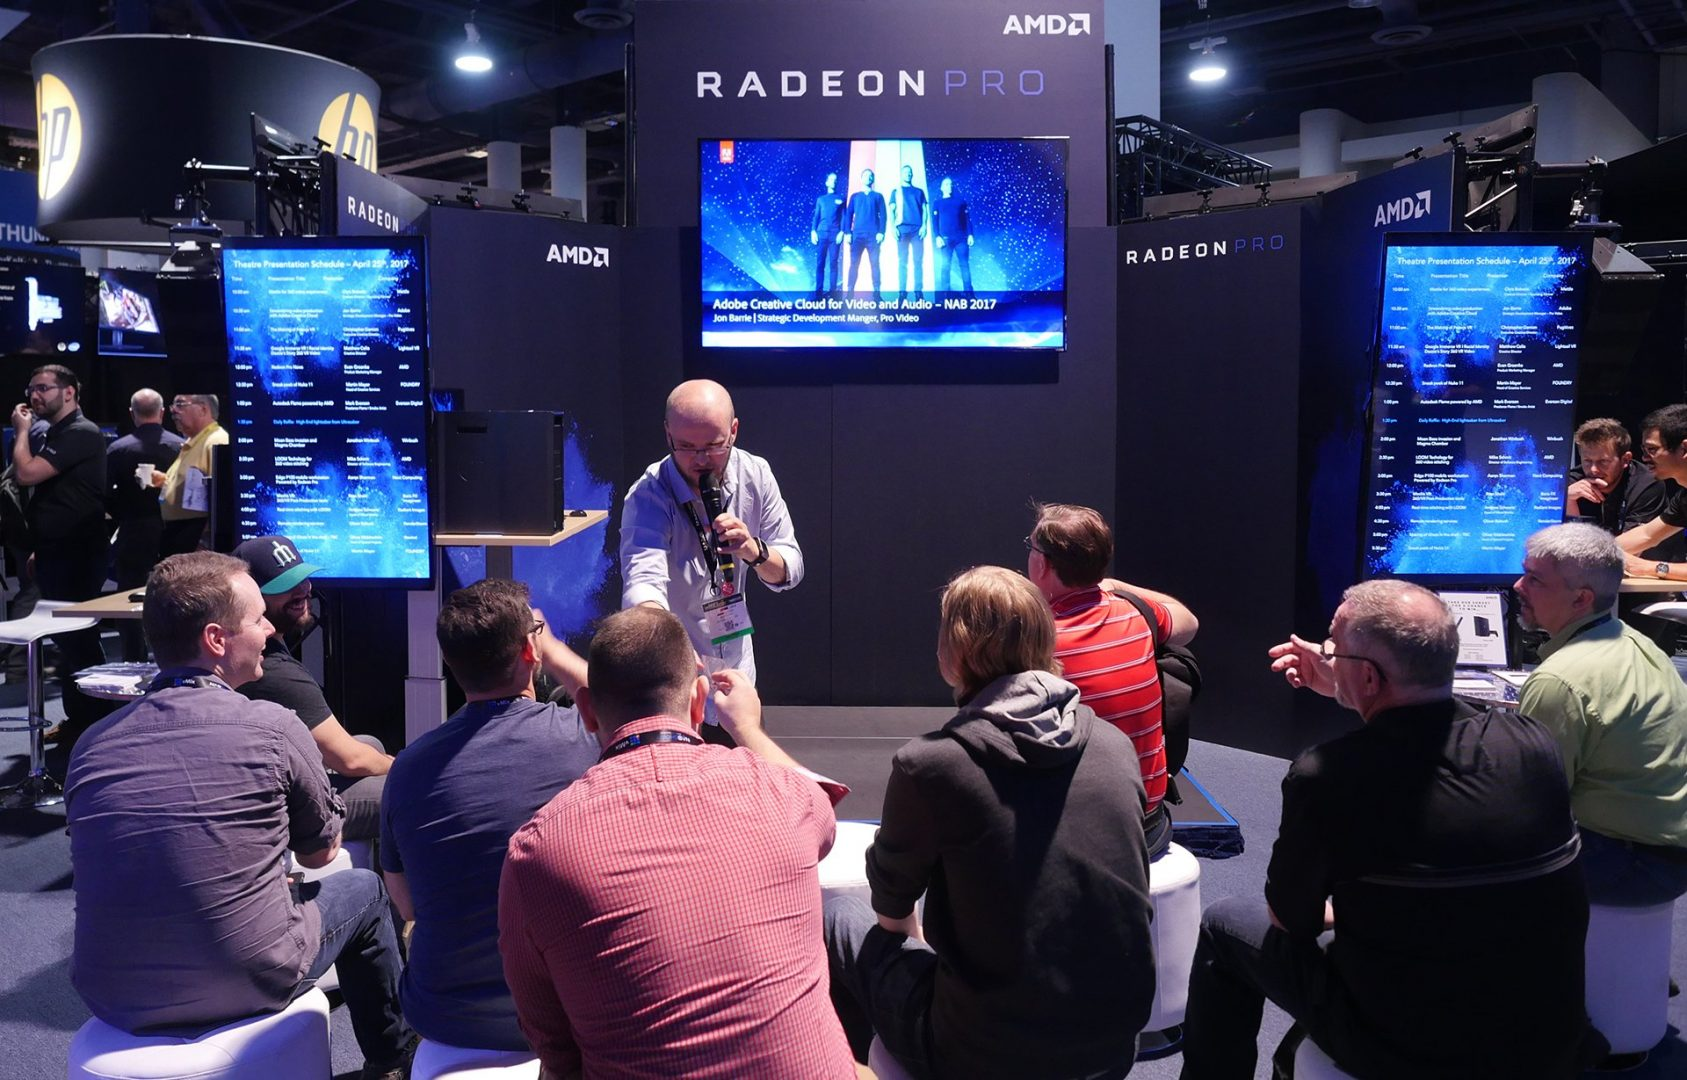 The StudioXperience AMD Radeon Pro Theater and Technology Zone at the 2017 NAB Show featured a steady stream of presentations throughout the show along with technical demos